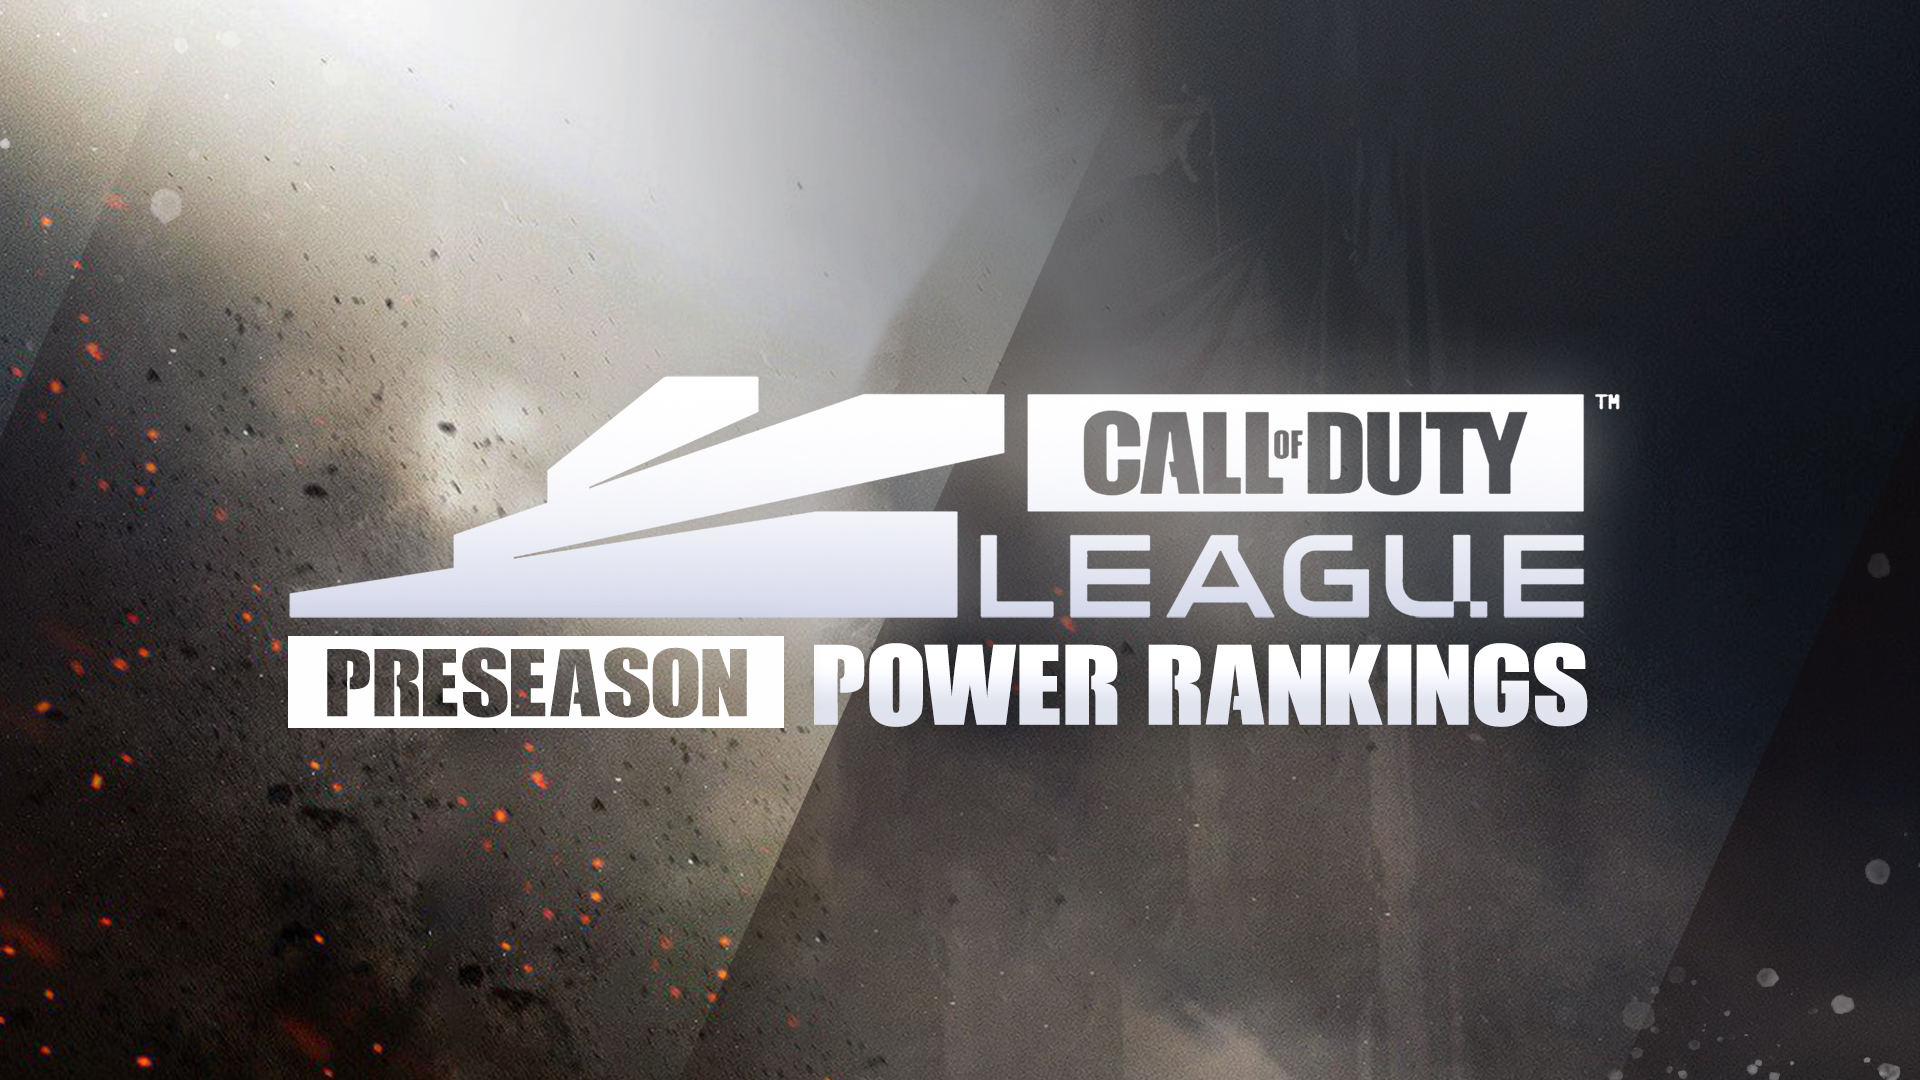 An image of Call of Duty League preseason power rankings text